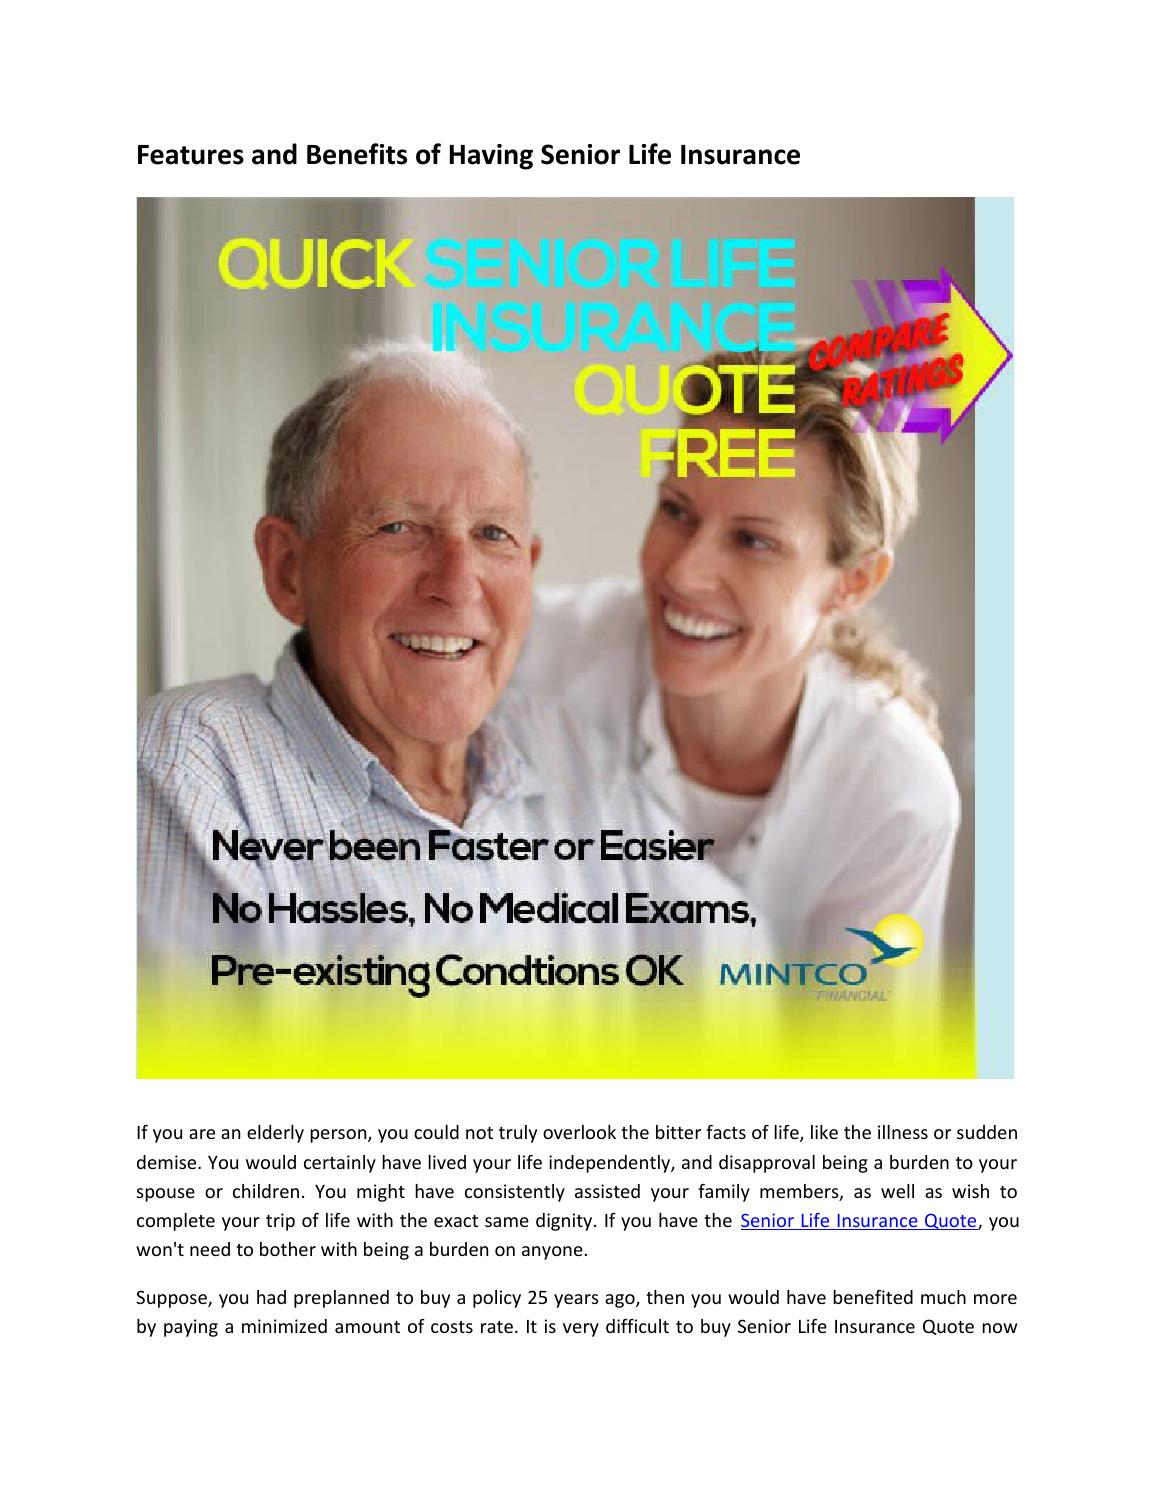 Senior Life Insurance Quote Features And Benefits Of Having Senior Life Insurance.